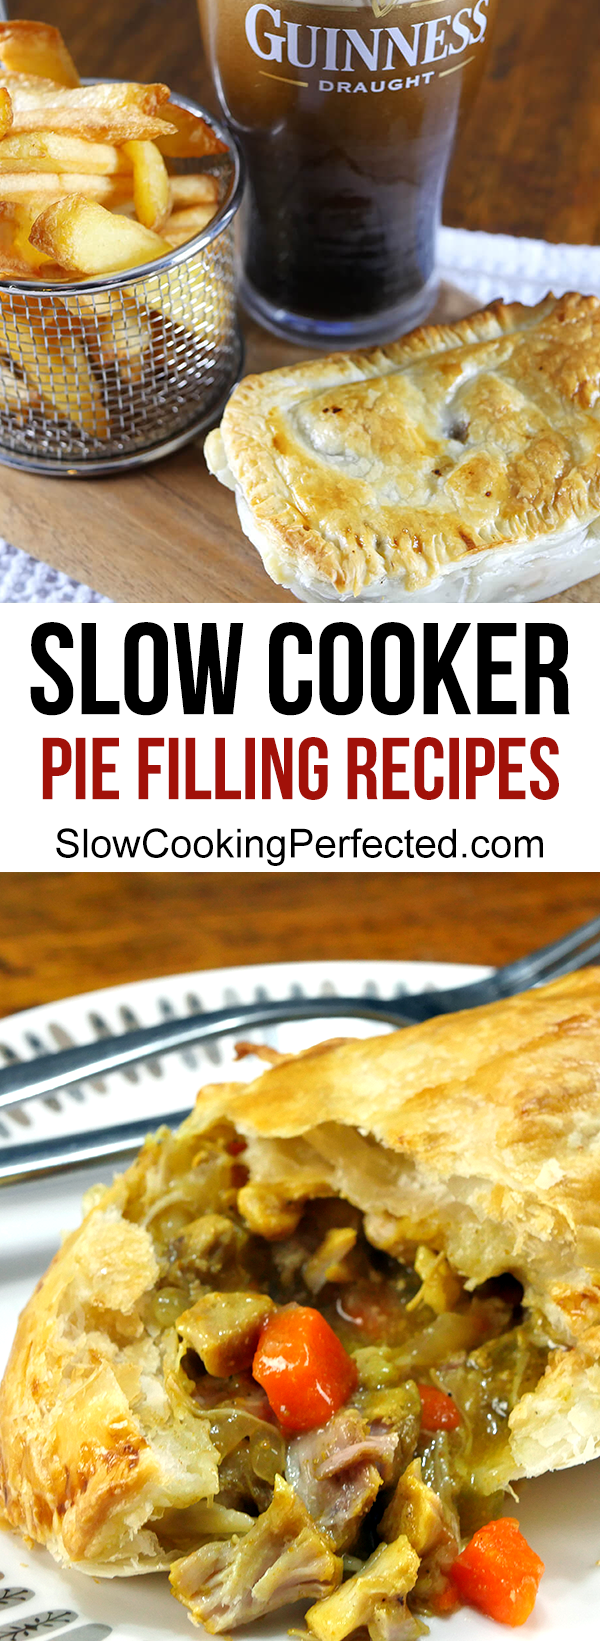 Incredibly Delicious Slow Cooker Pie Recipes | Recipe ...